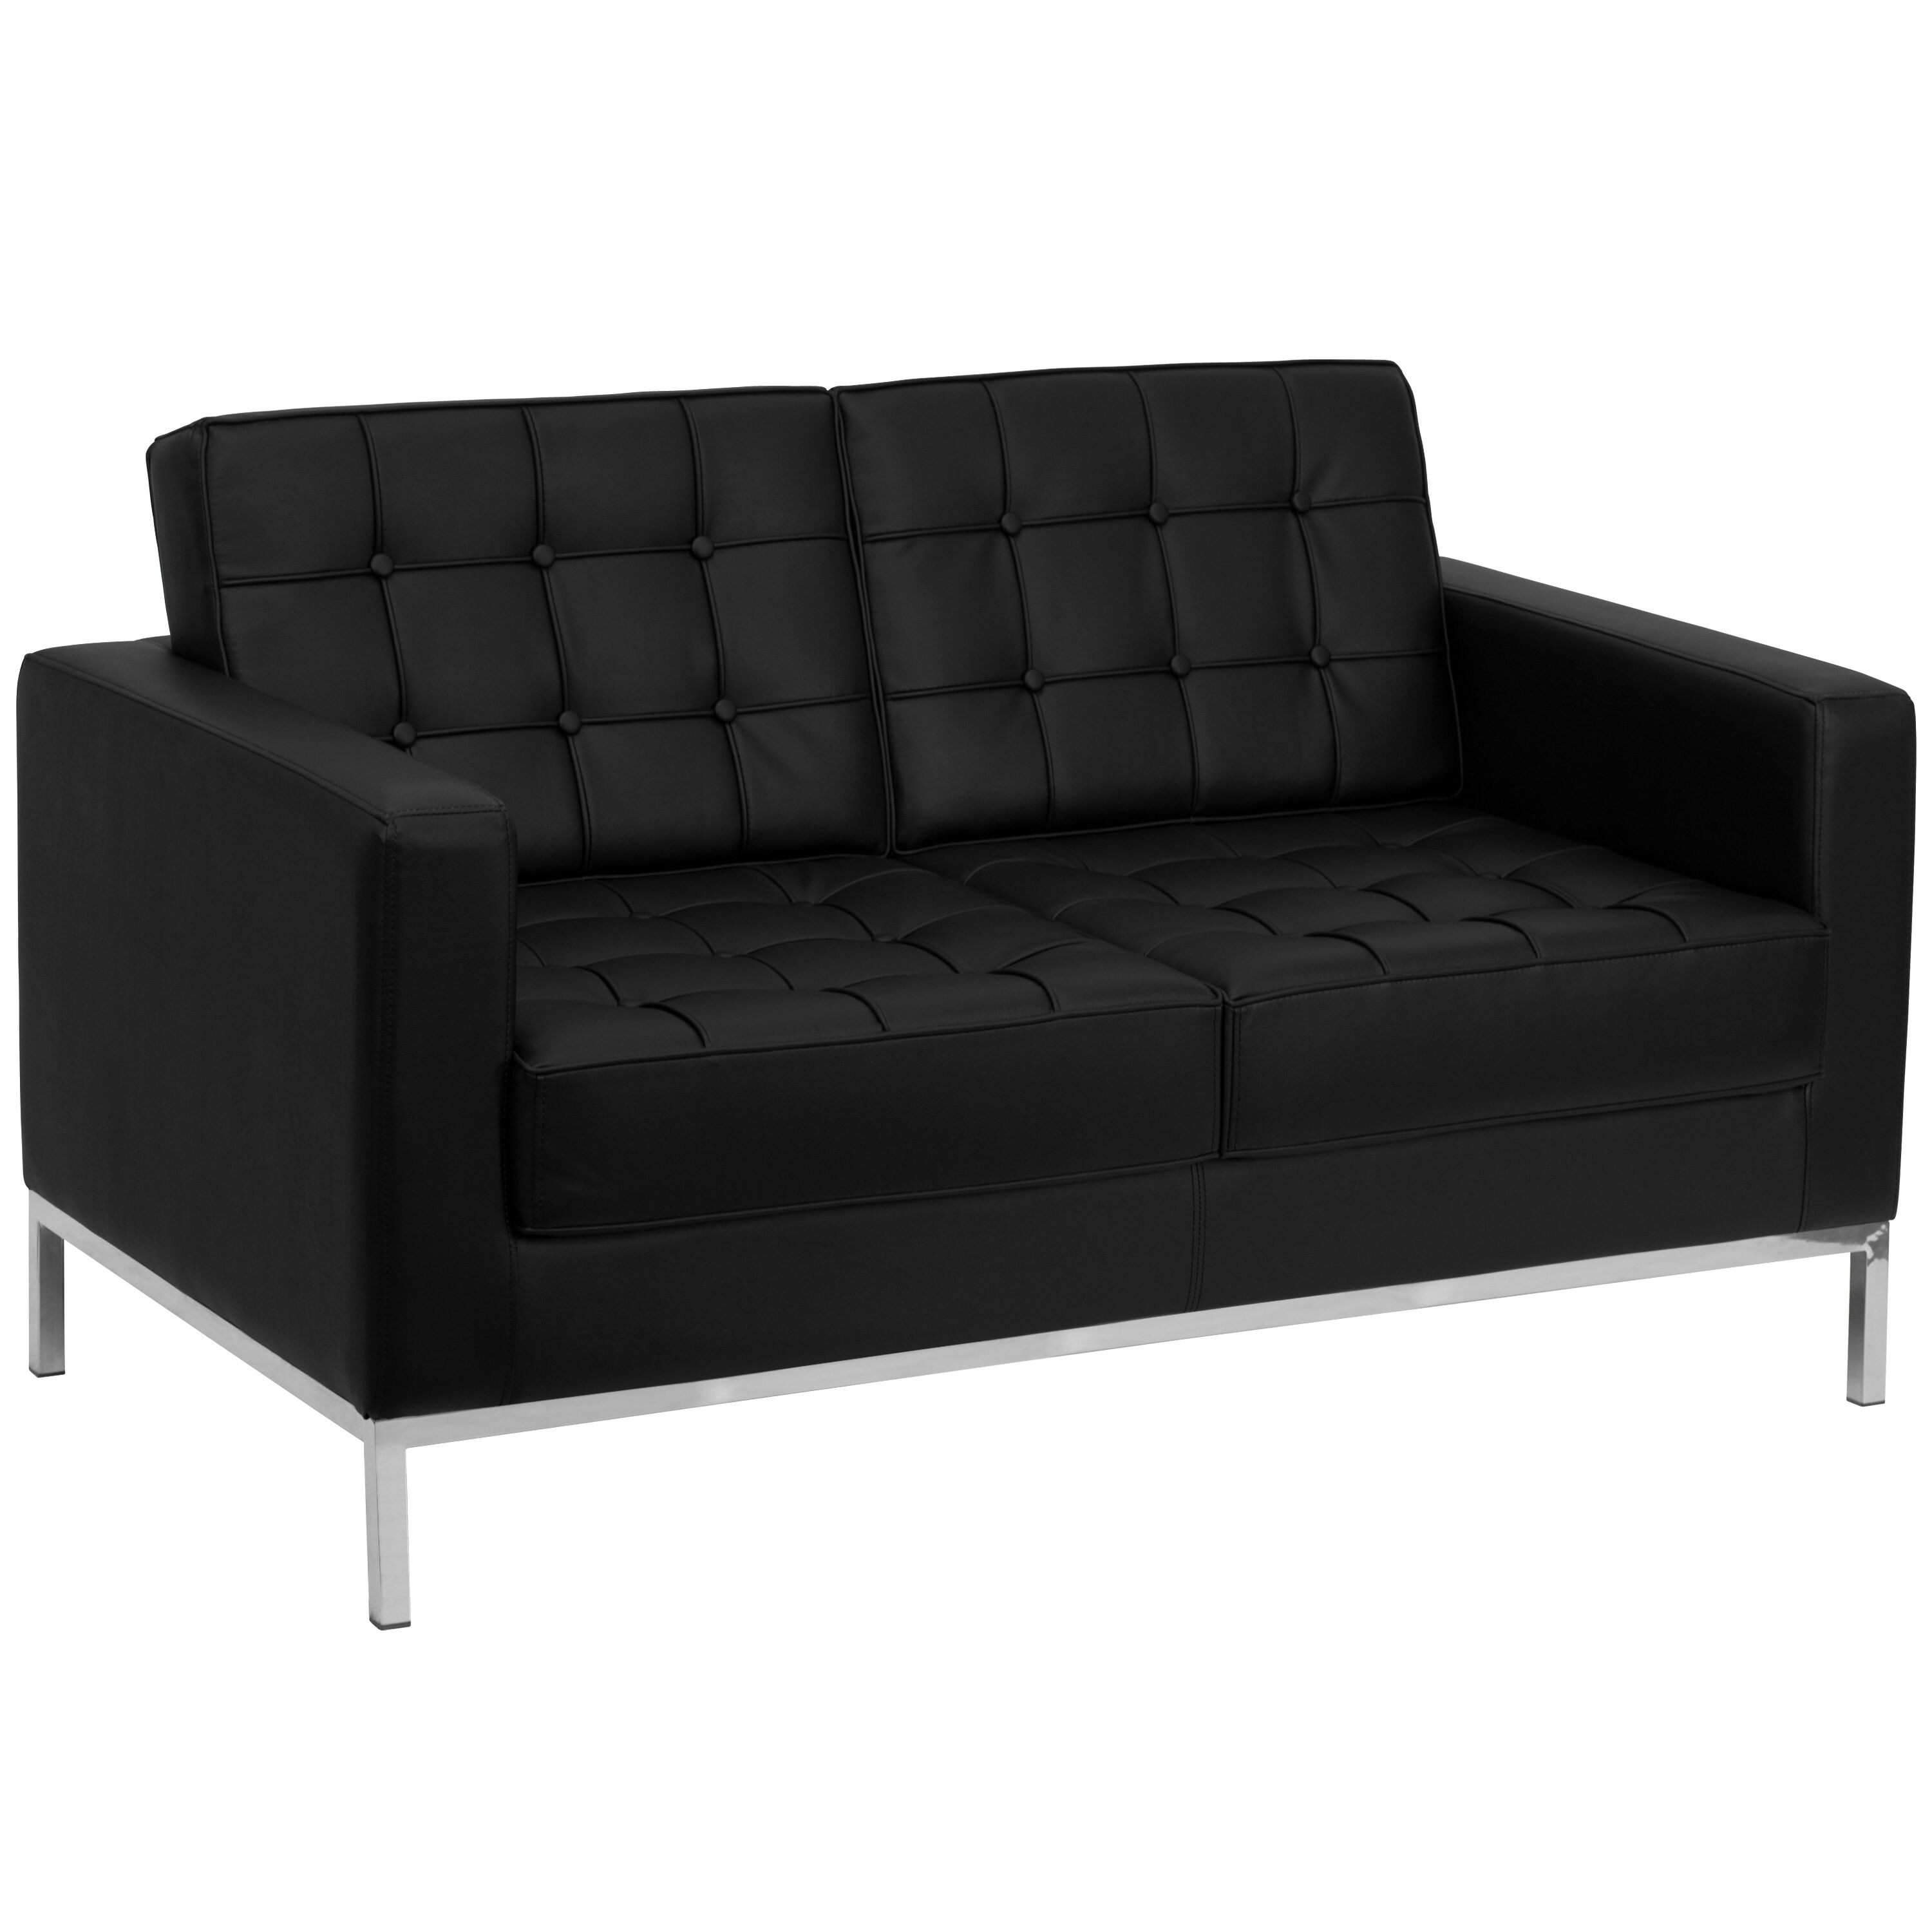 hercules lacey series black leather loveseat with stainless steel frame